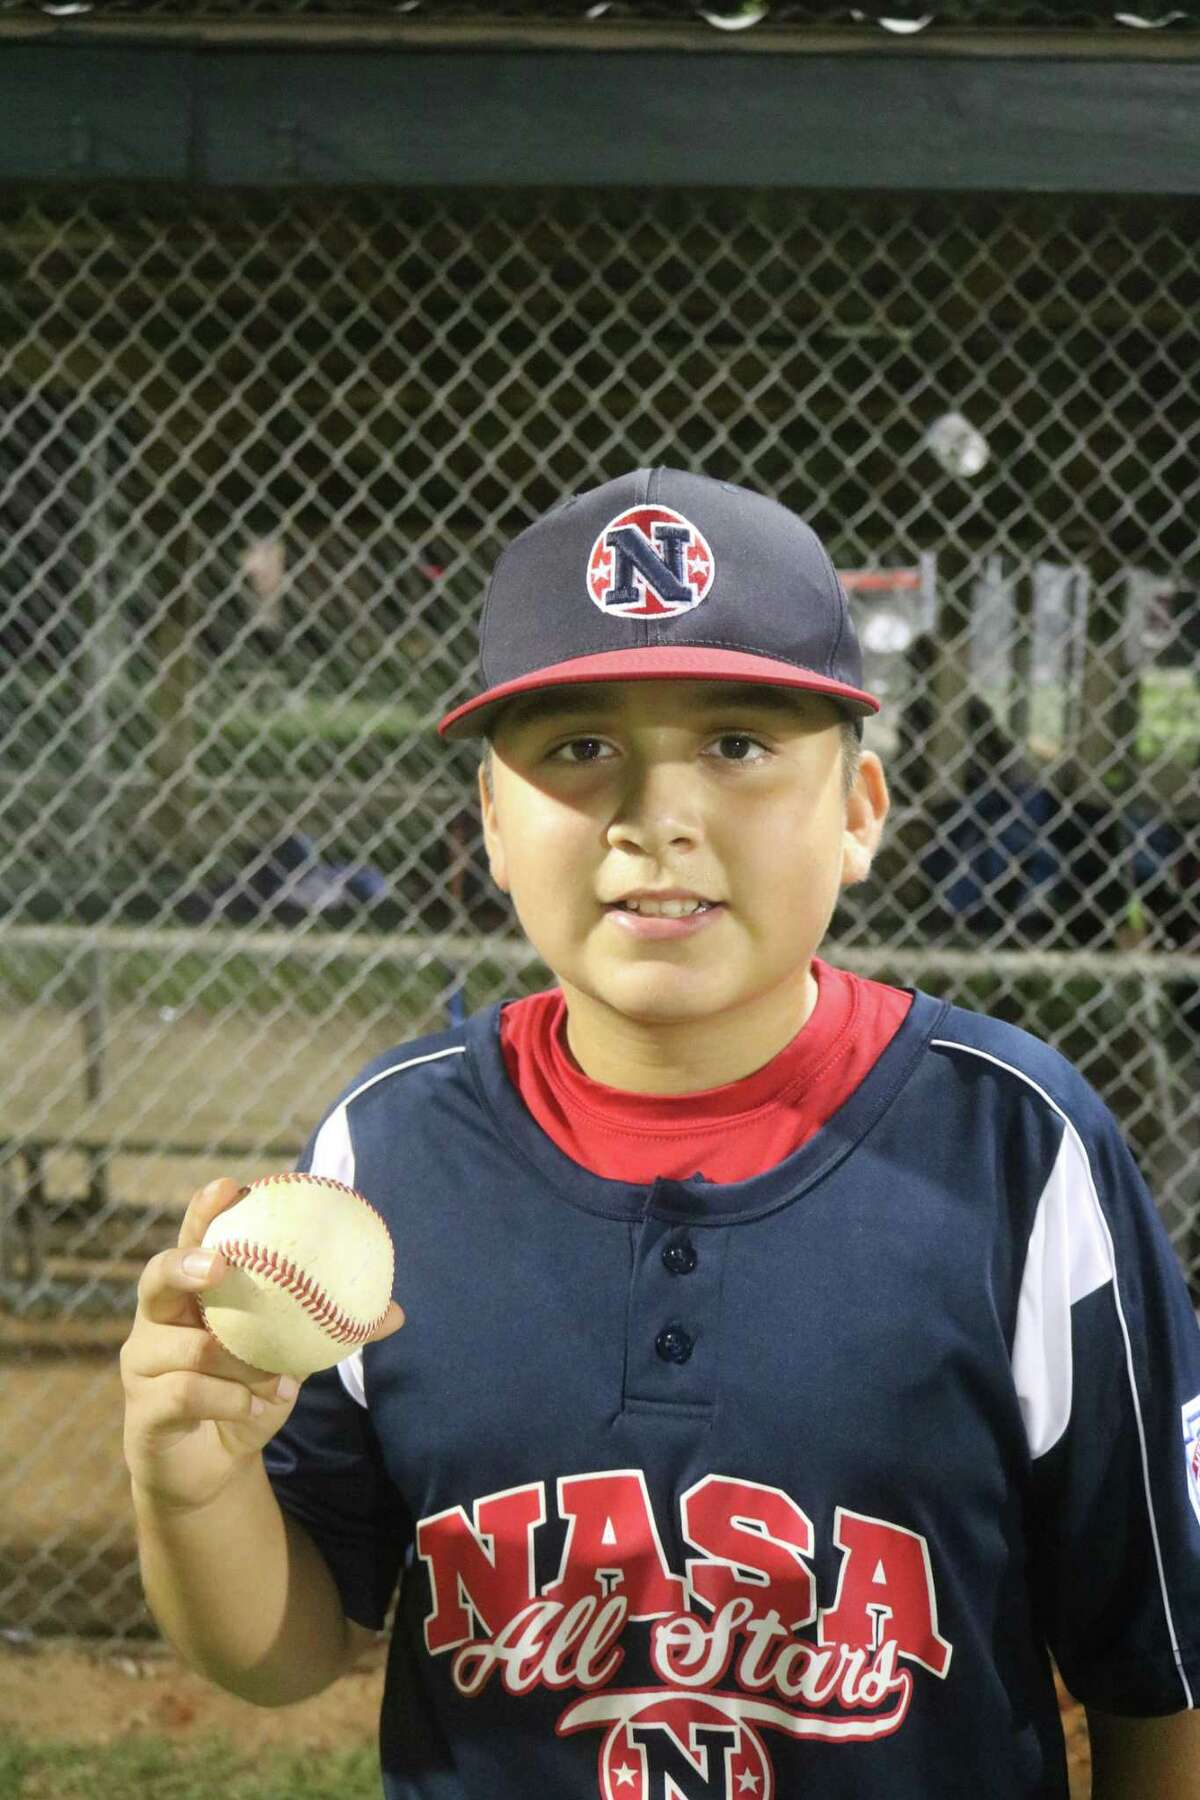 Noah Saucedo clouted a two-run homer during the team's final at-bat, helping the team open the Section 3 Tournament with a victory.